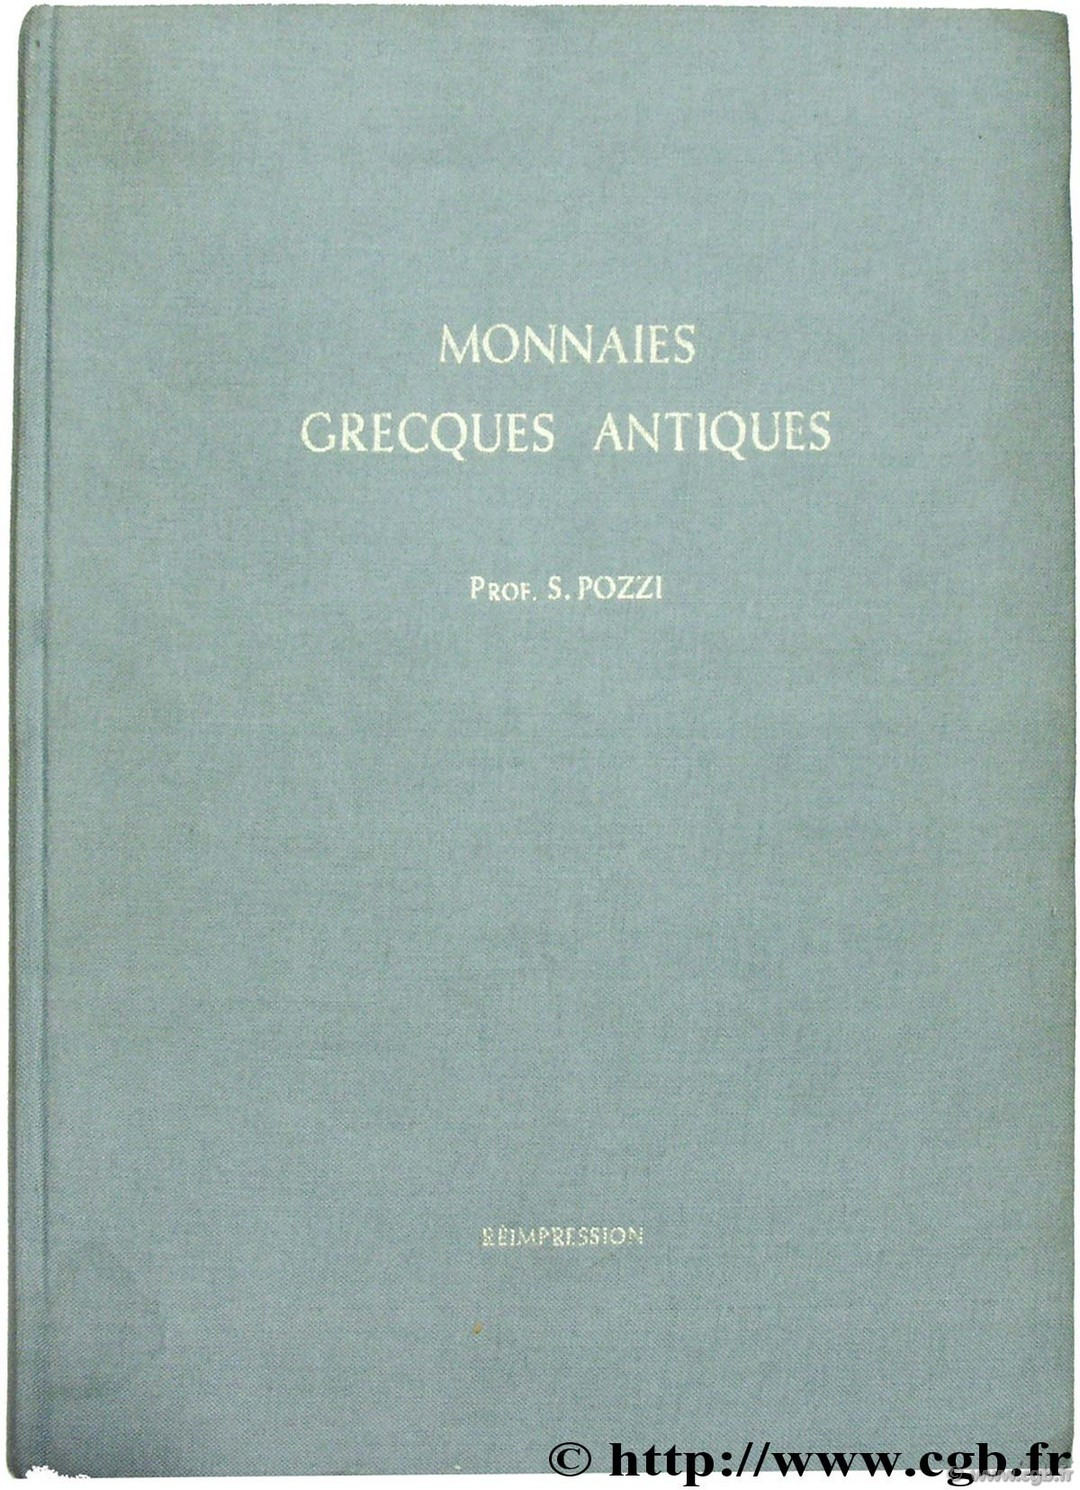 Catalogue des monnaies grecques antiques de l ancienne collection Pozzi